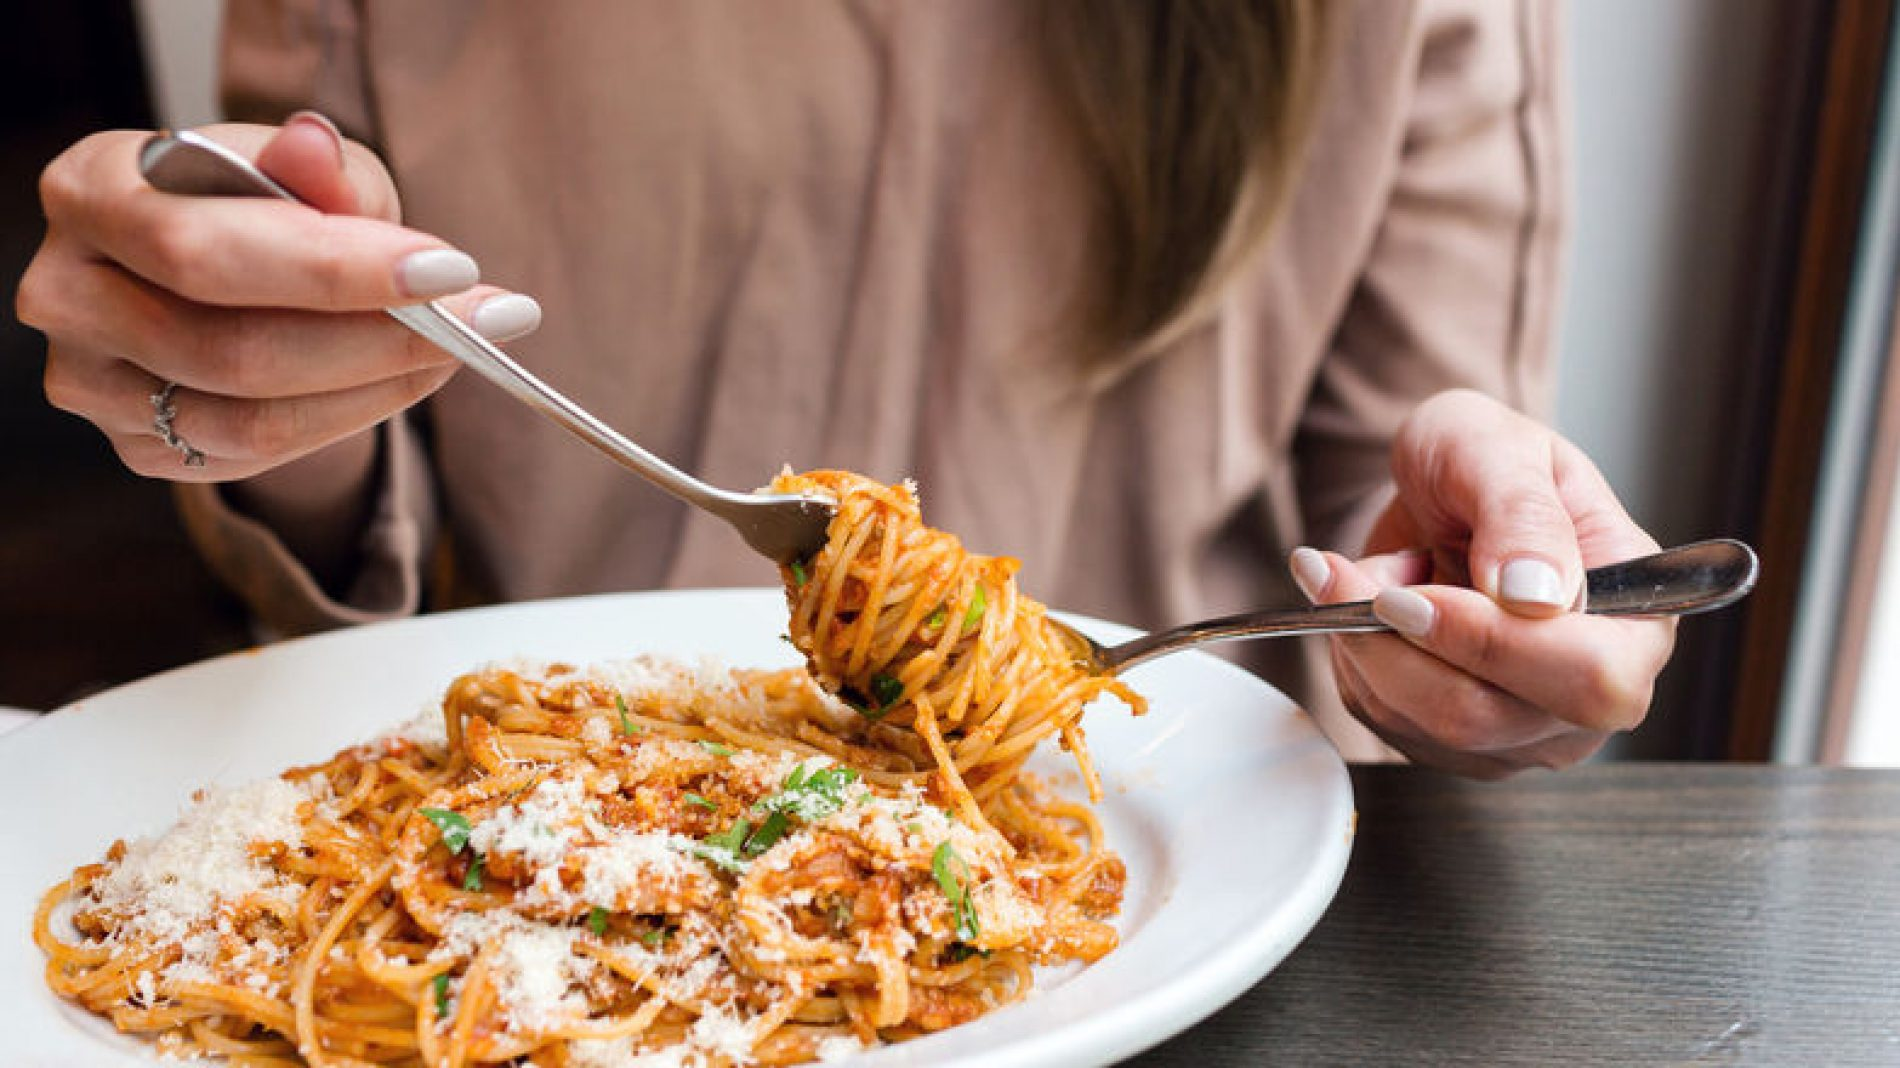 Young-person-eating-a-bowl-of-pasta